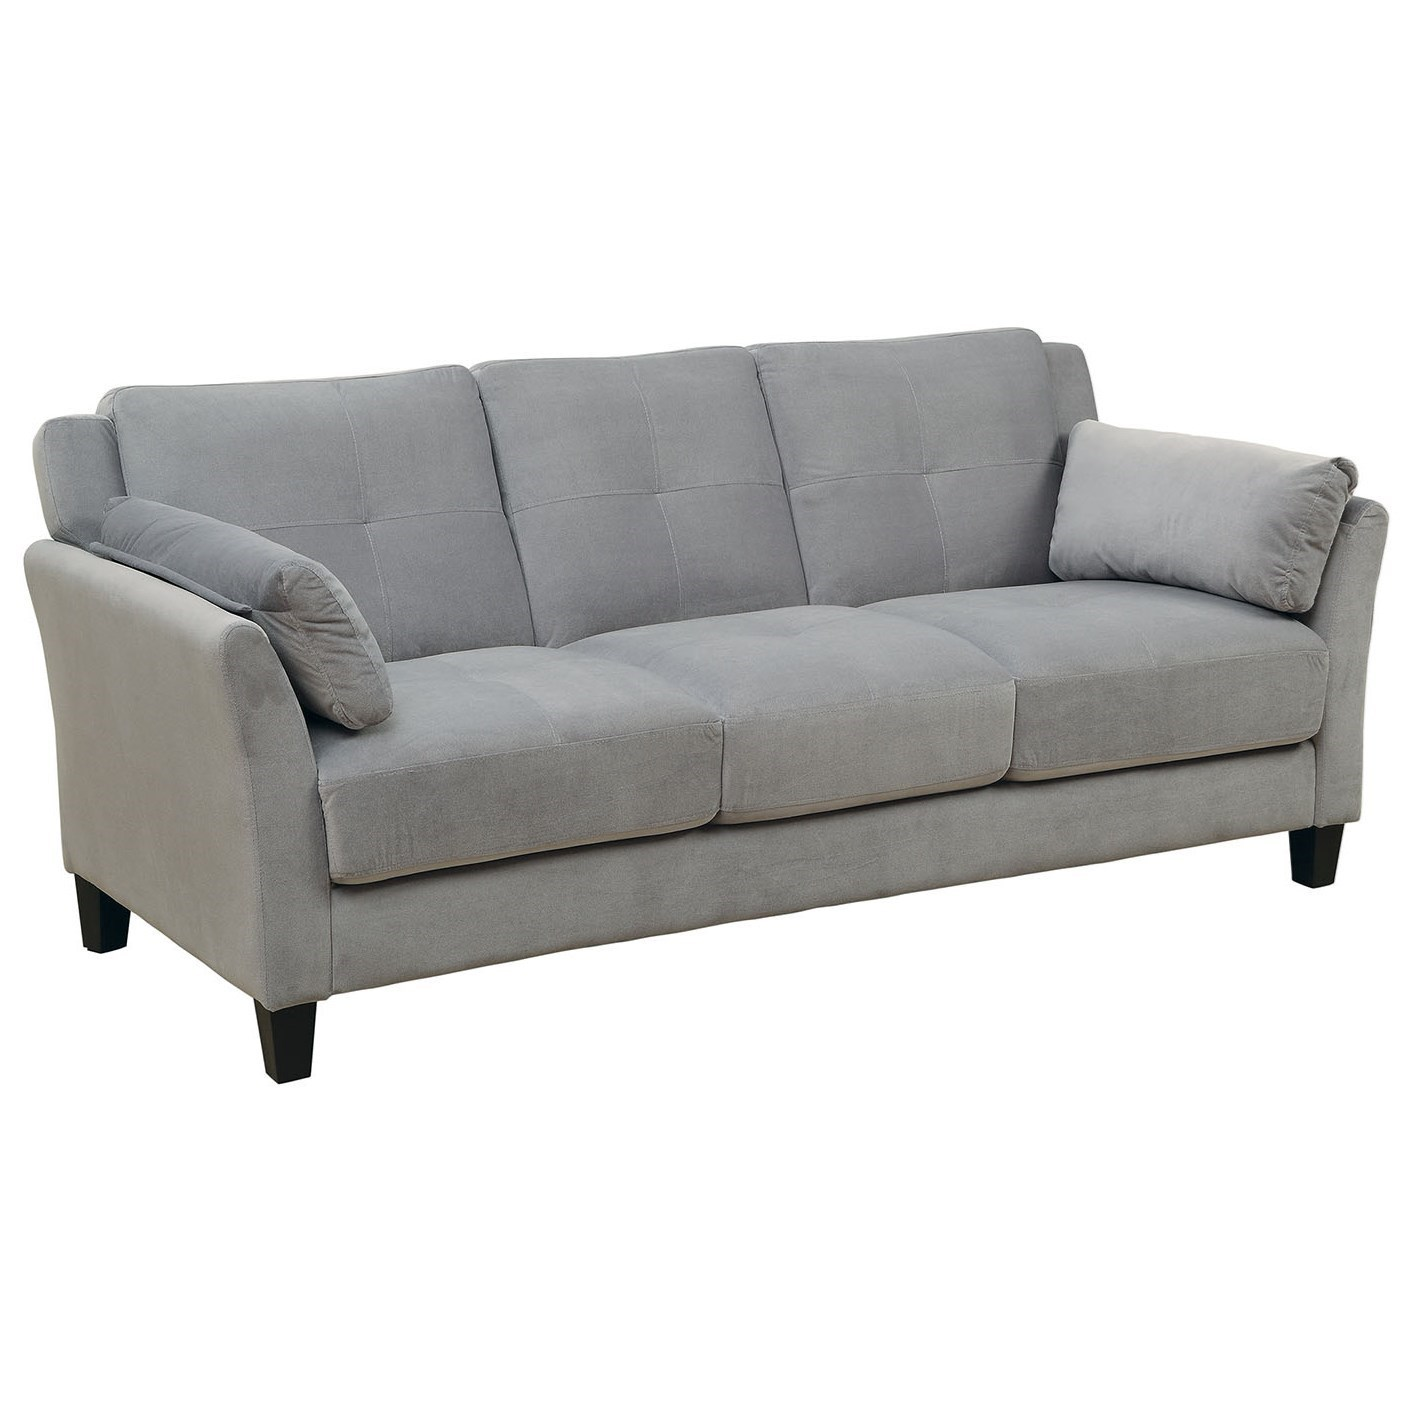 Contemporary Couch Ysabel Contemporary Sofa By Furniture Of America At Rooms For Less